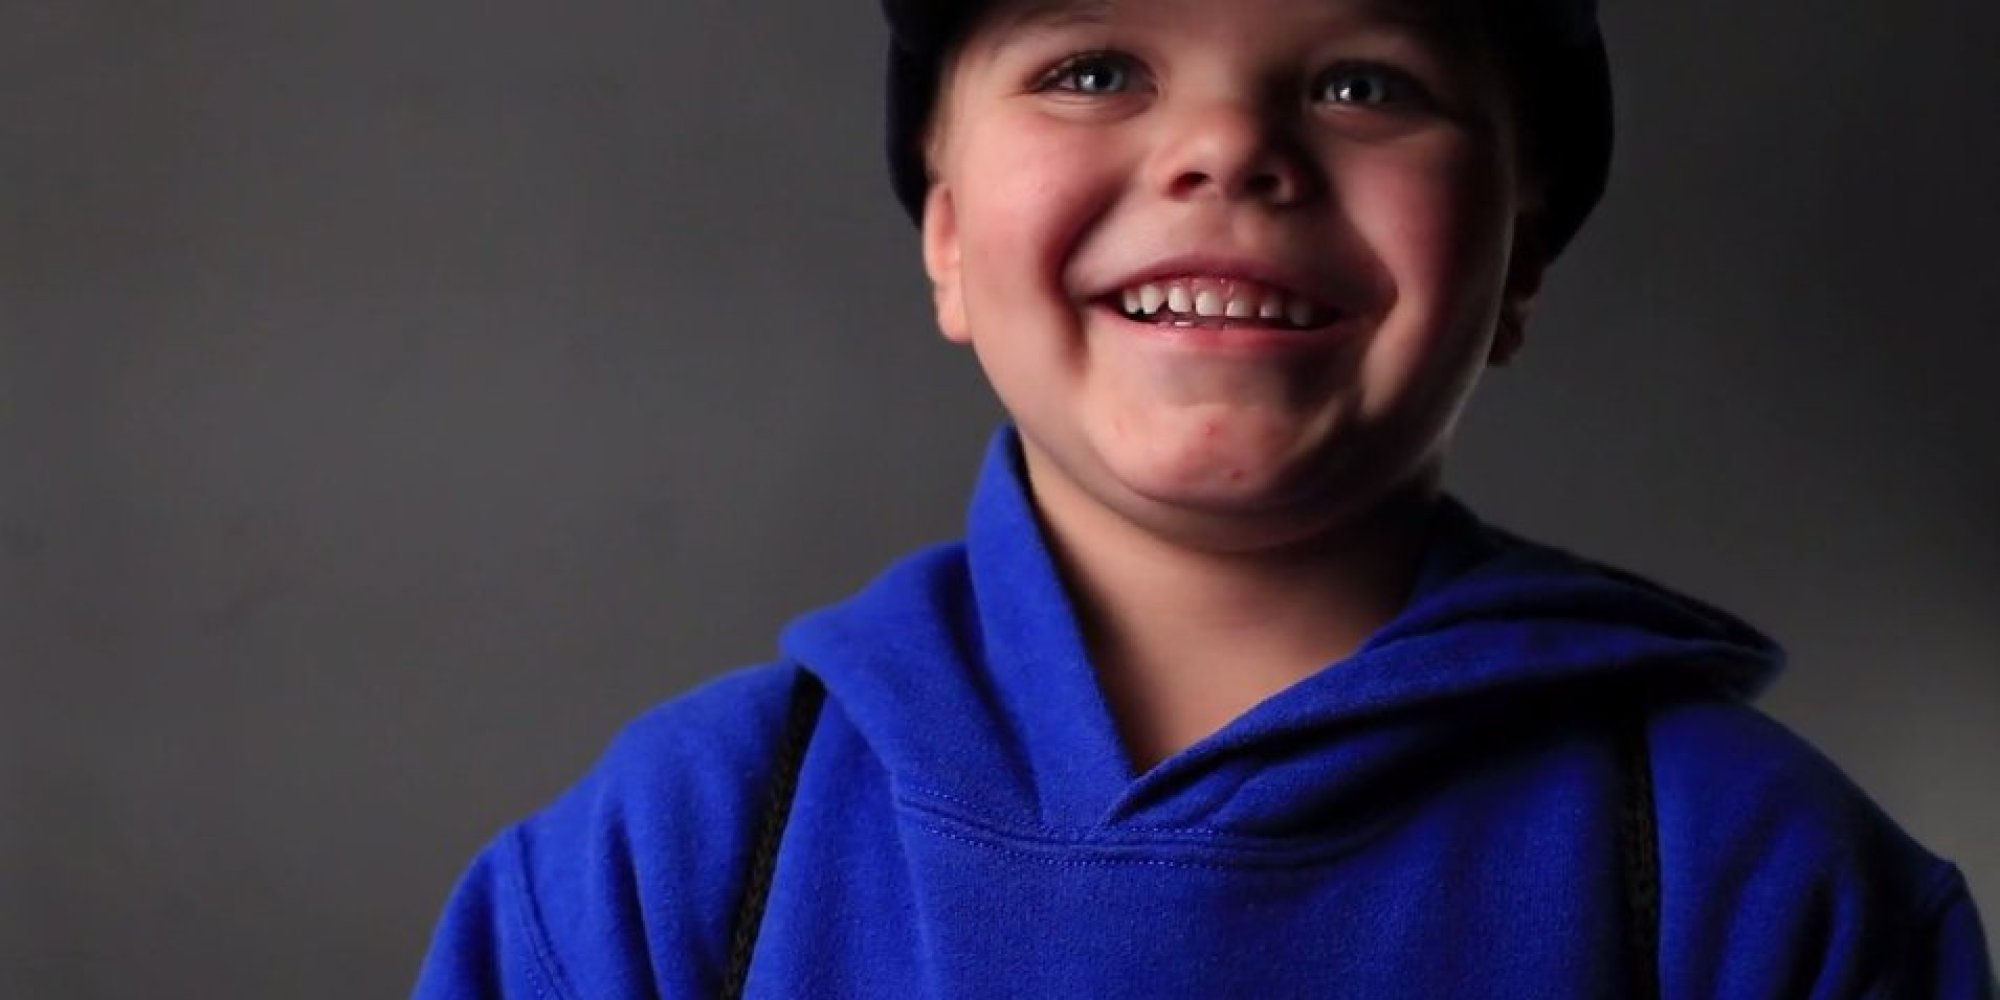 Meet Miles Scott The Batkid And The Wonderful People Behind His Wish VIDEO HuffPost